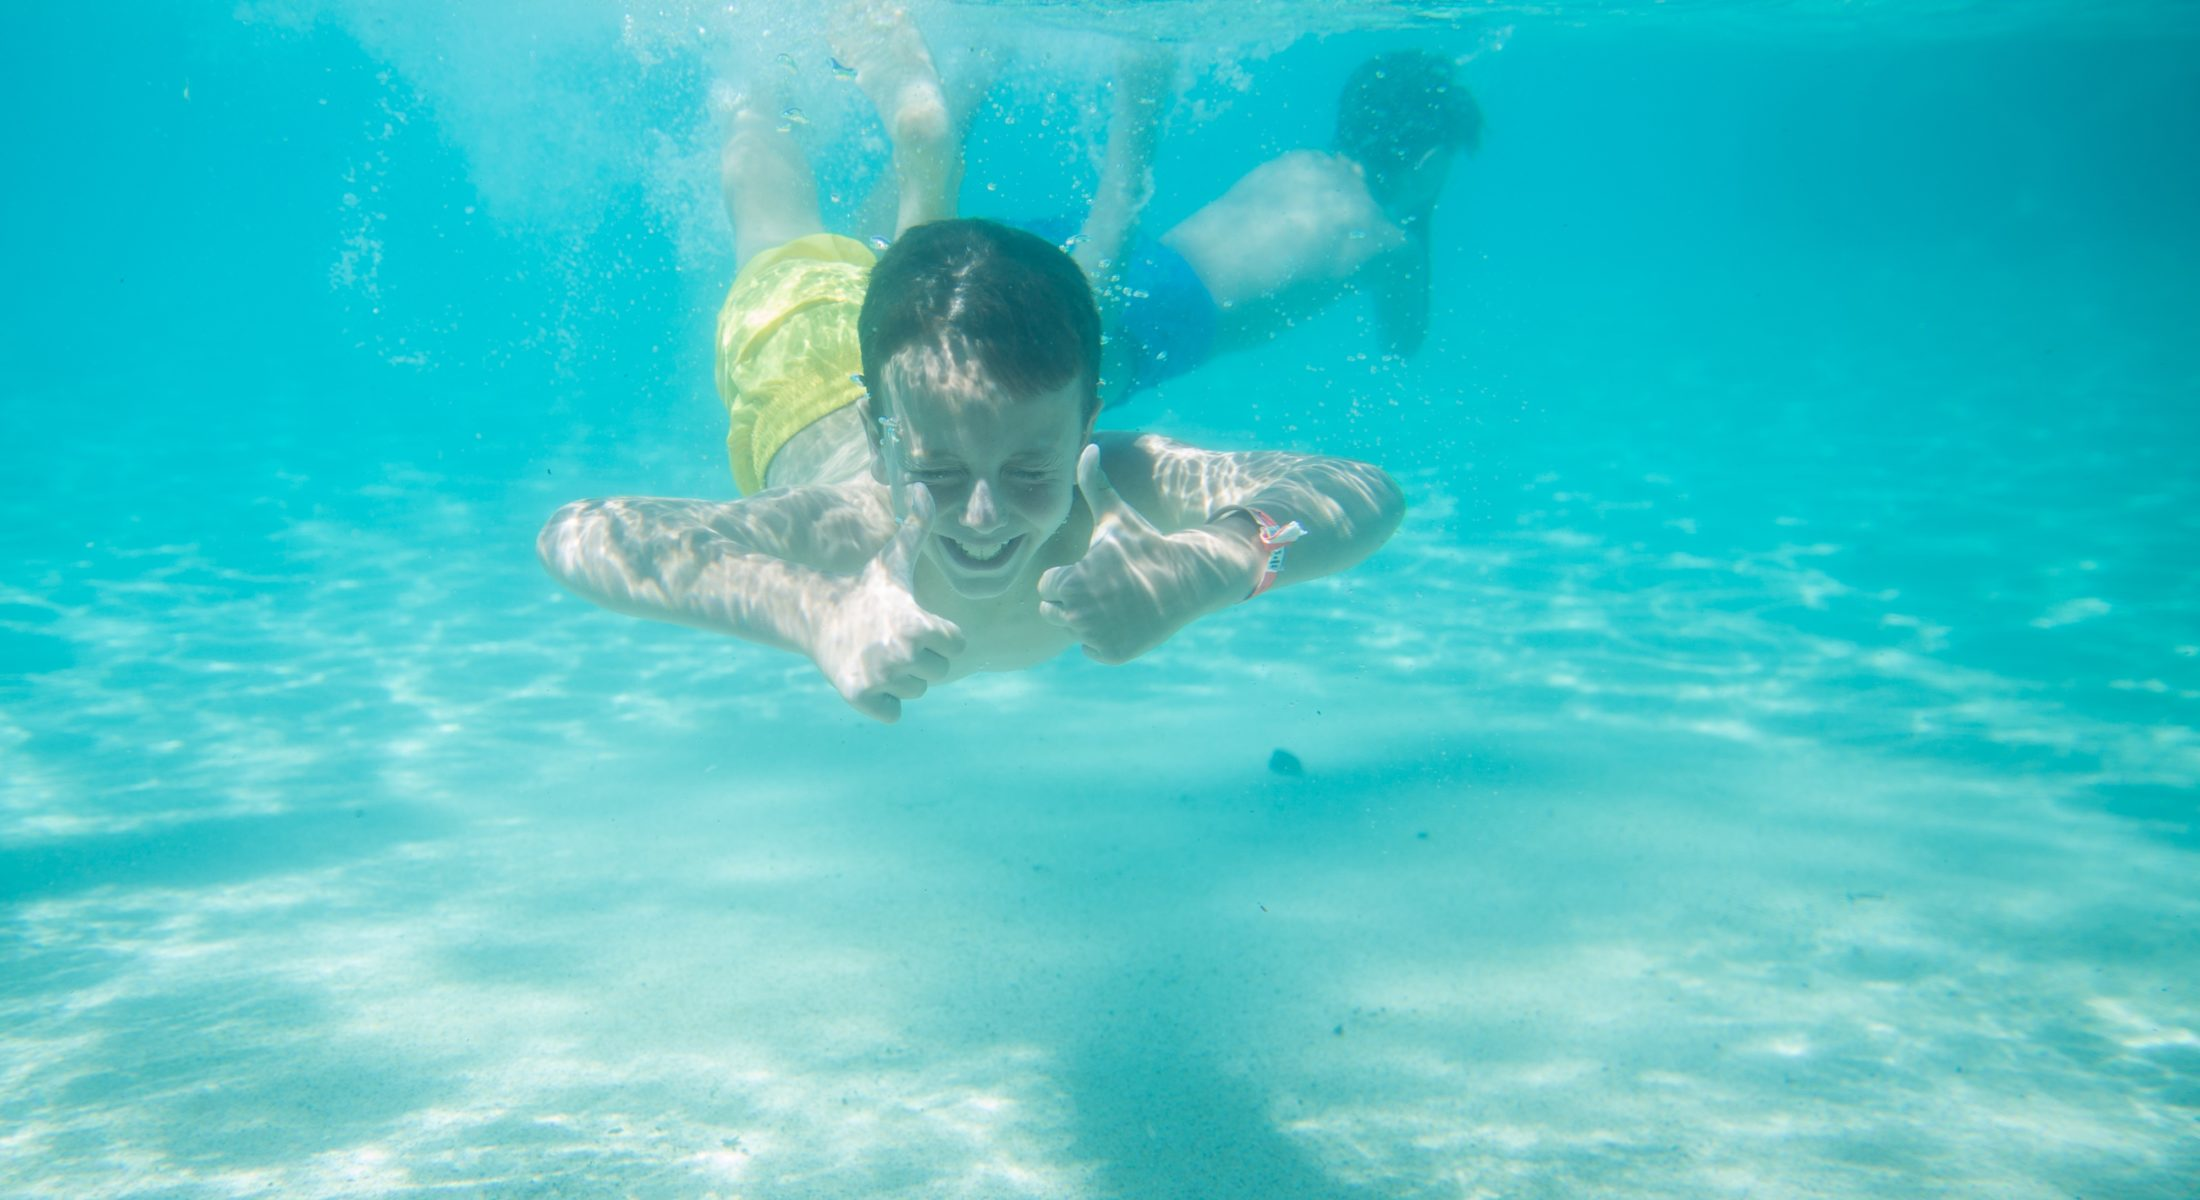 Settlement Cove Redcliffe Lagoon Swimming With The Kids Summertime Underwater Moreton Bay Region